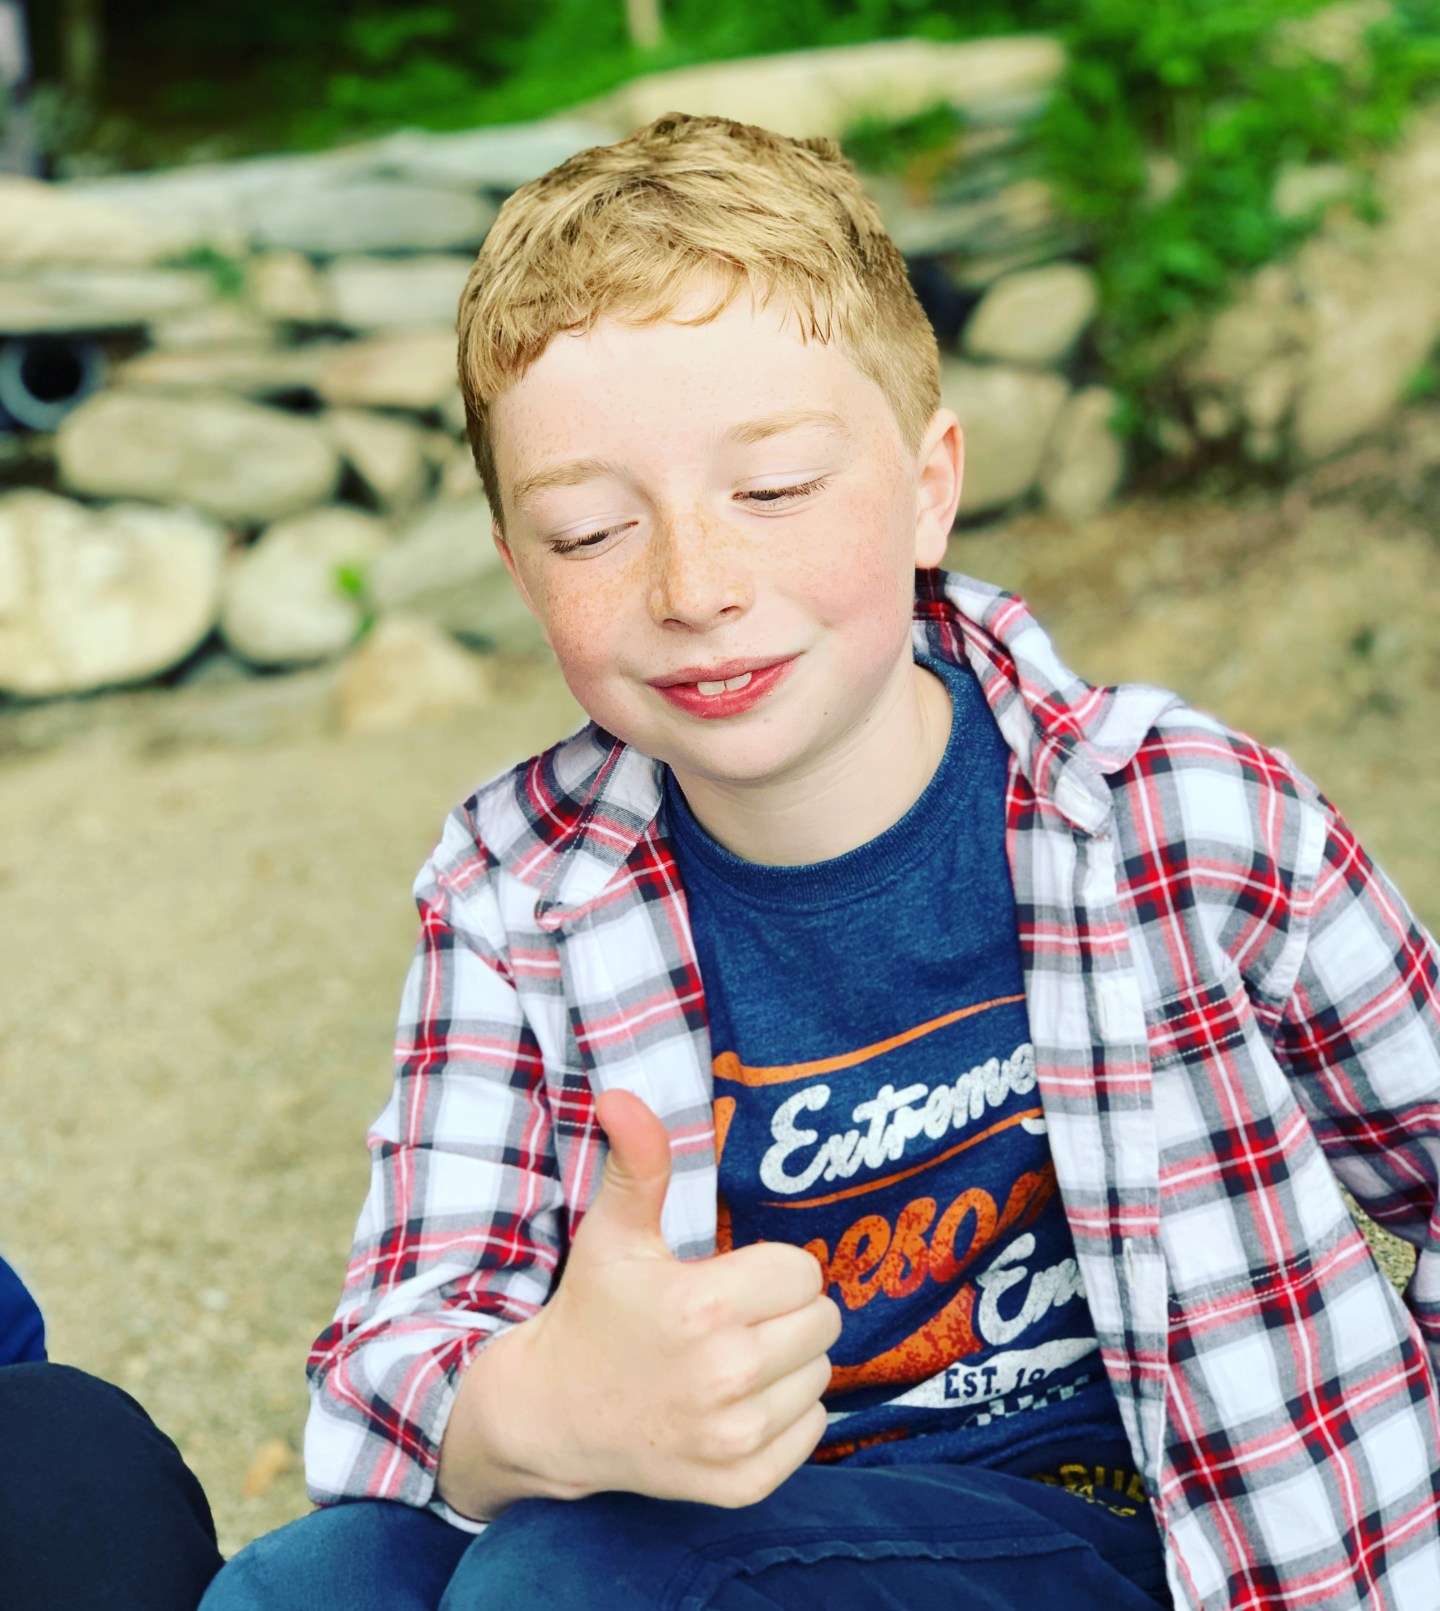 #TheOrdinaryMoments – Happy Double Digit Eve To Our Little Man